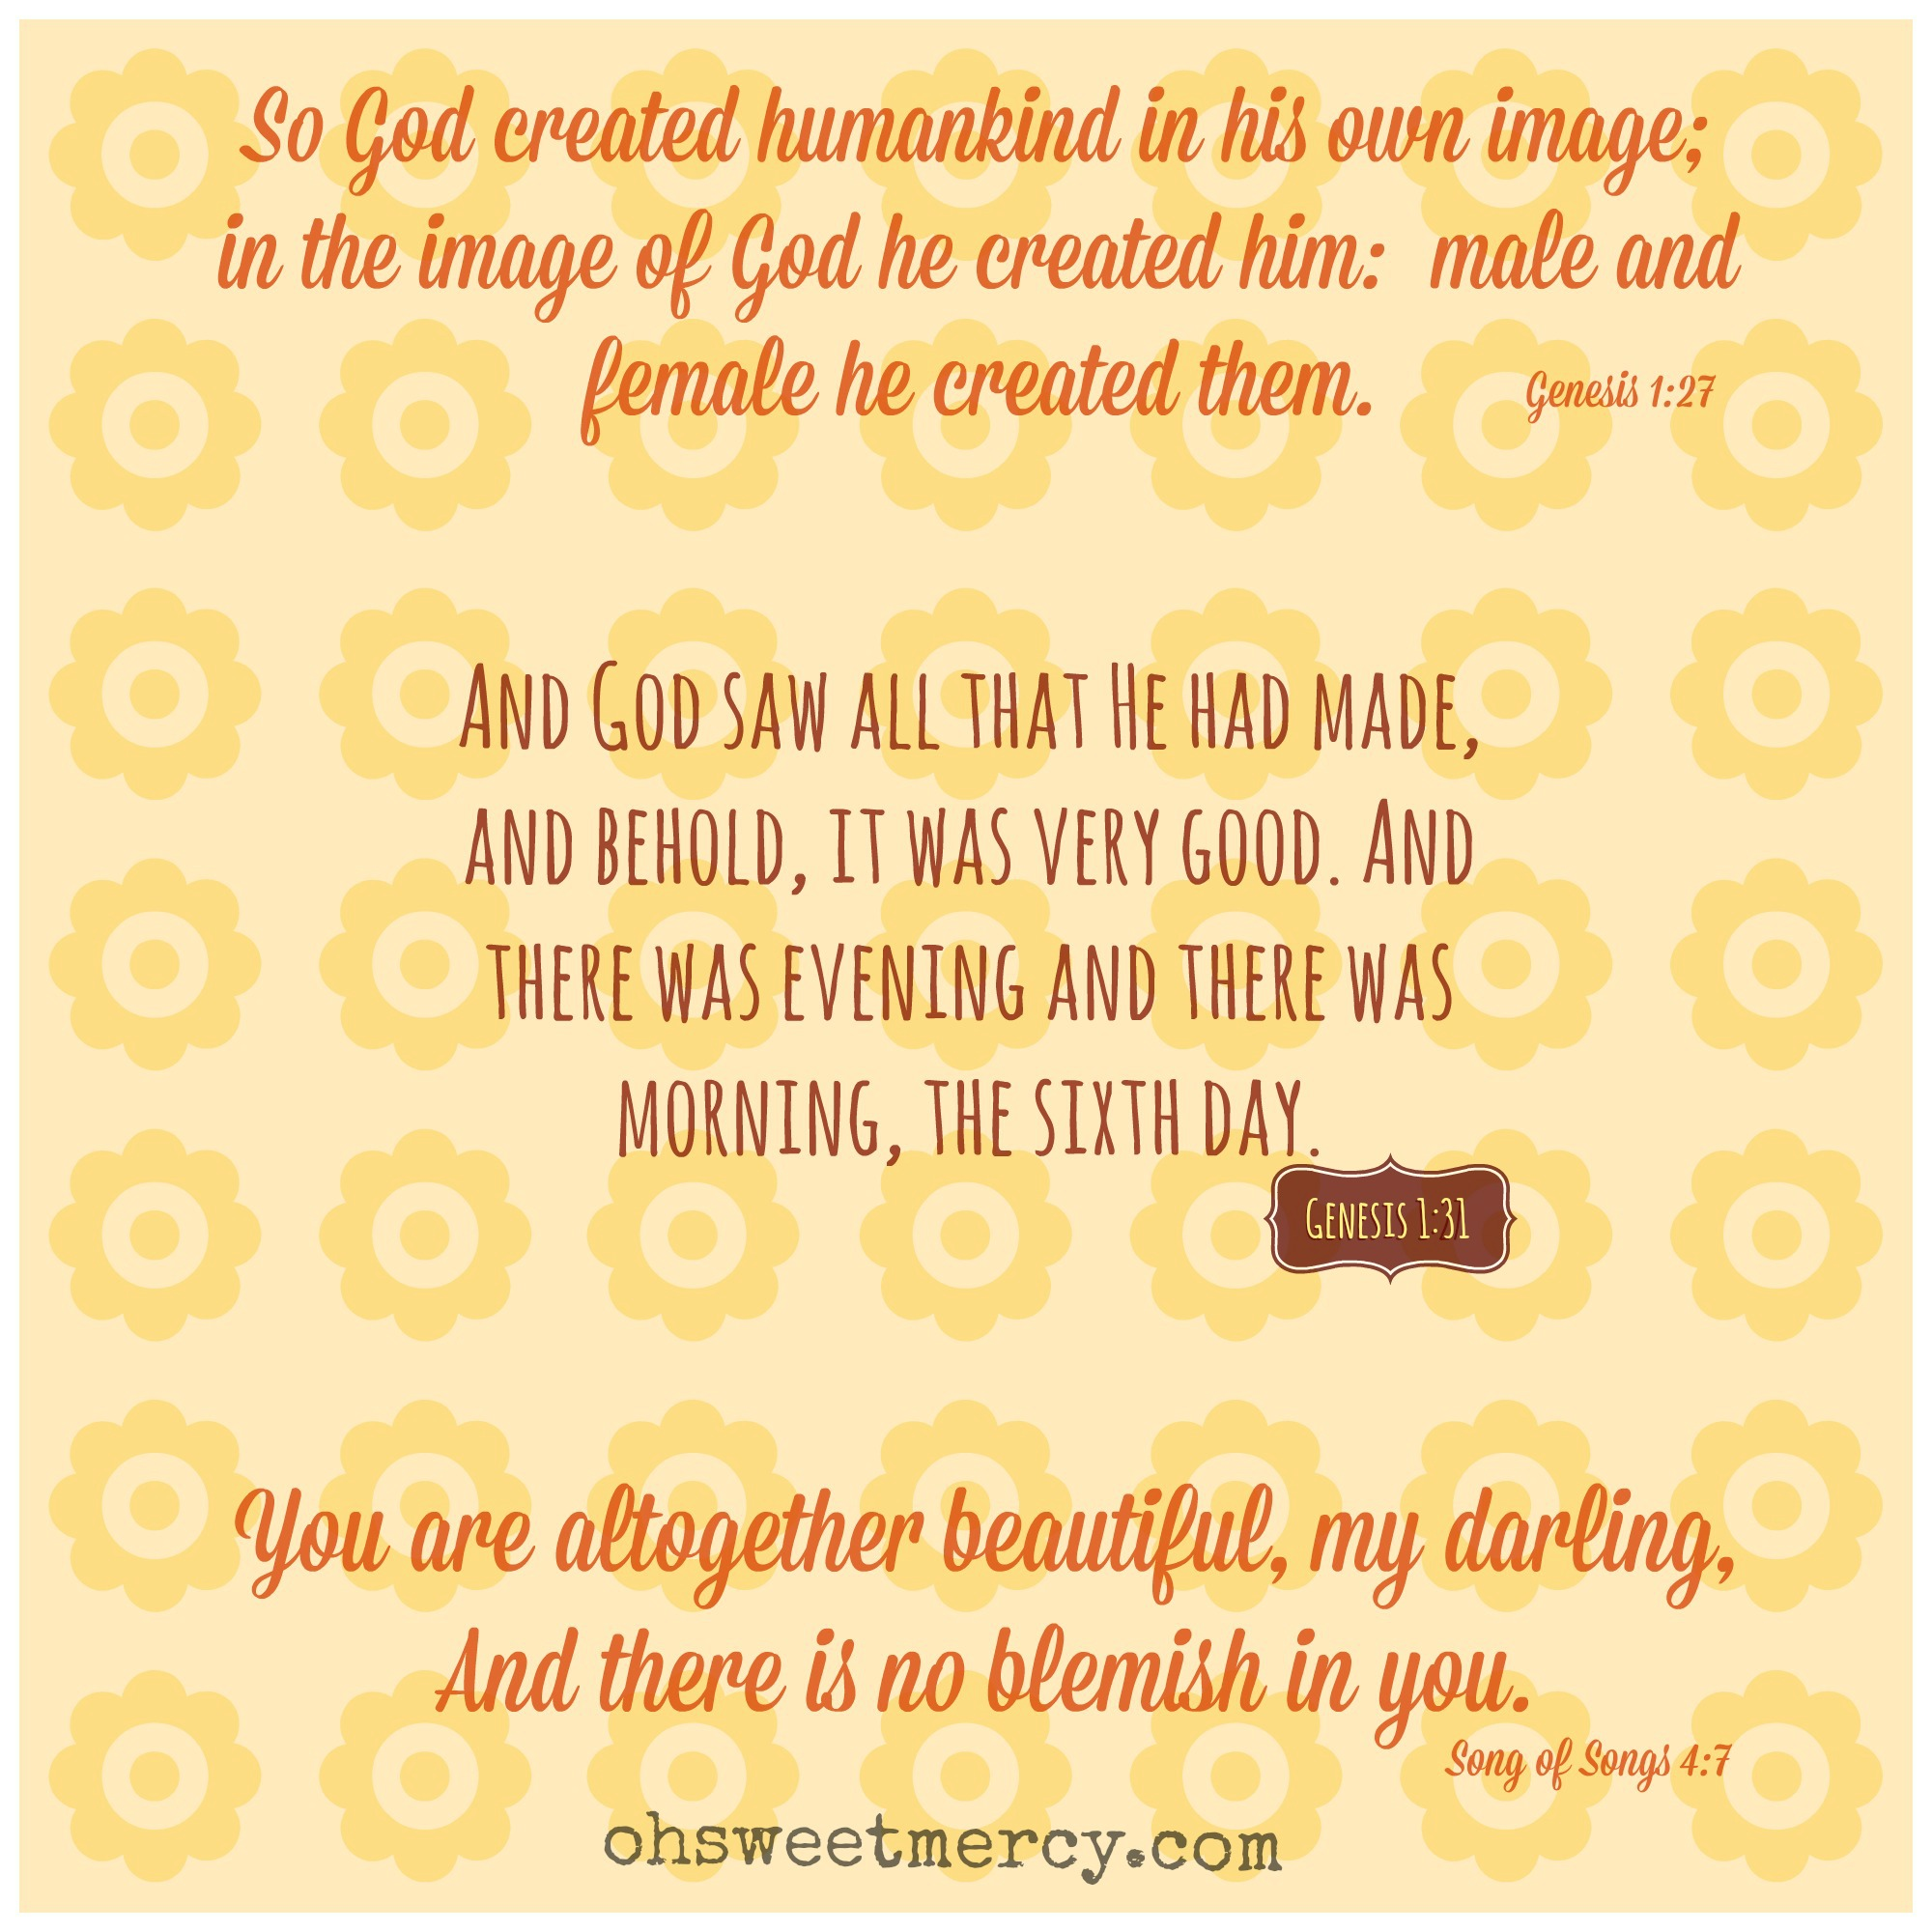 You were created beautifully